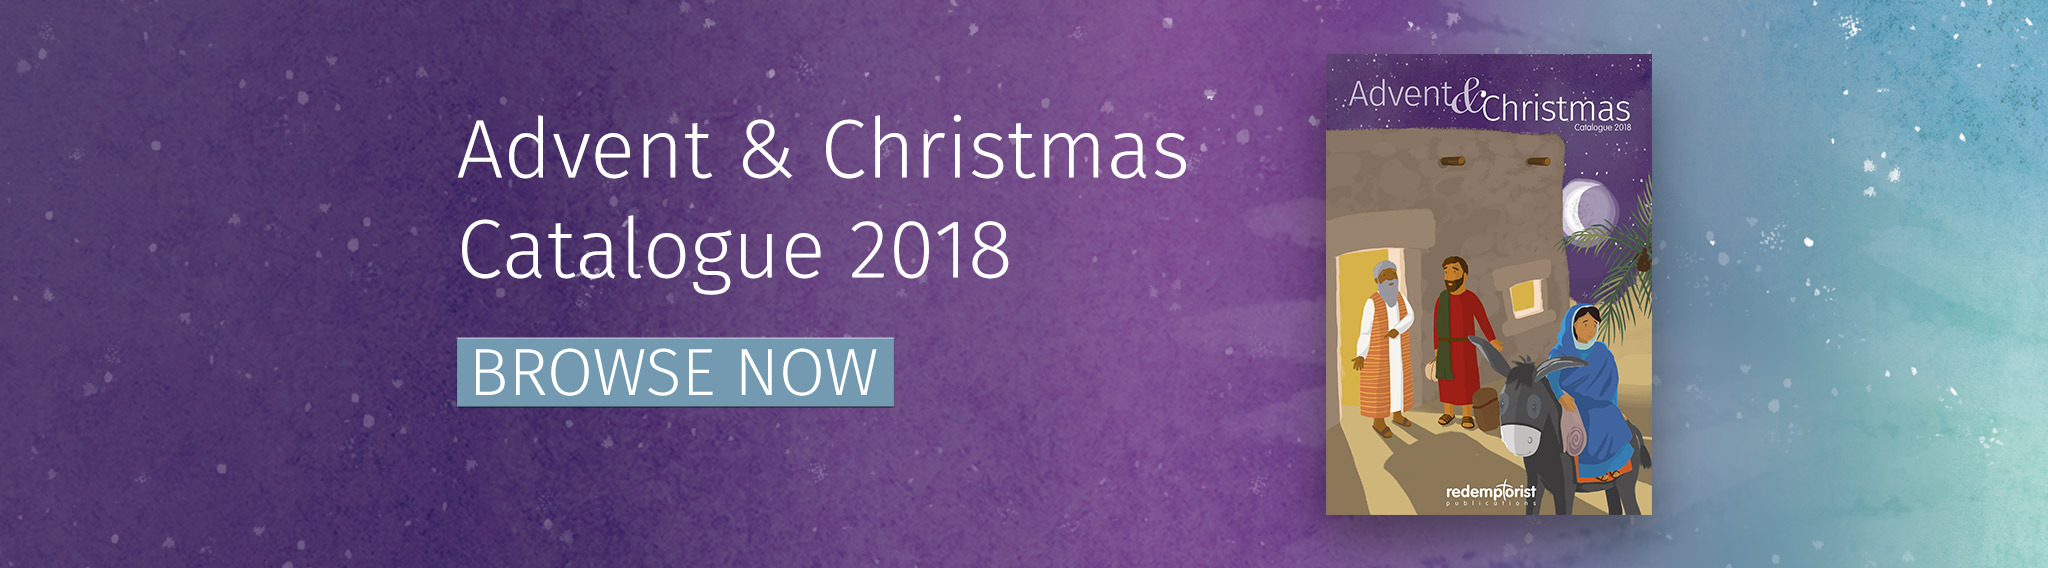 Advent and Christmas Catalogue 2018